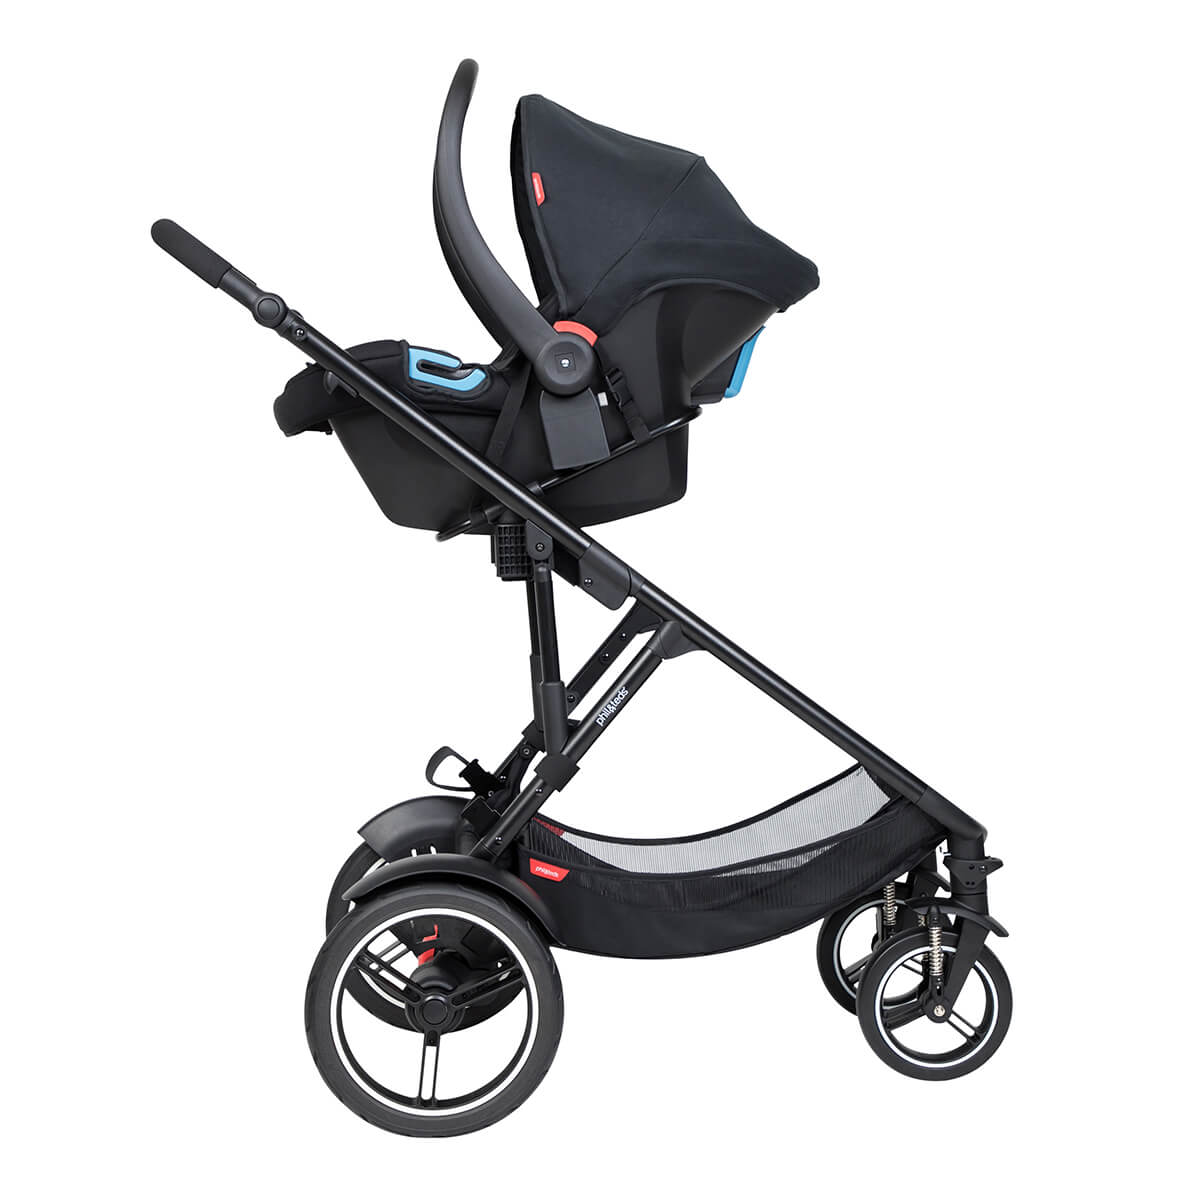 https://cdn.accentuate.io/4509867311201/19793938874538/philteds-voyager-buggy-with-travel-system-in-parent-facing-mode-v1626485386870.jpg?1200x1200